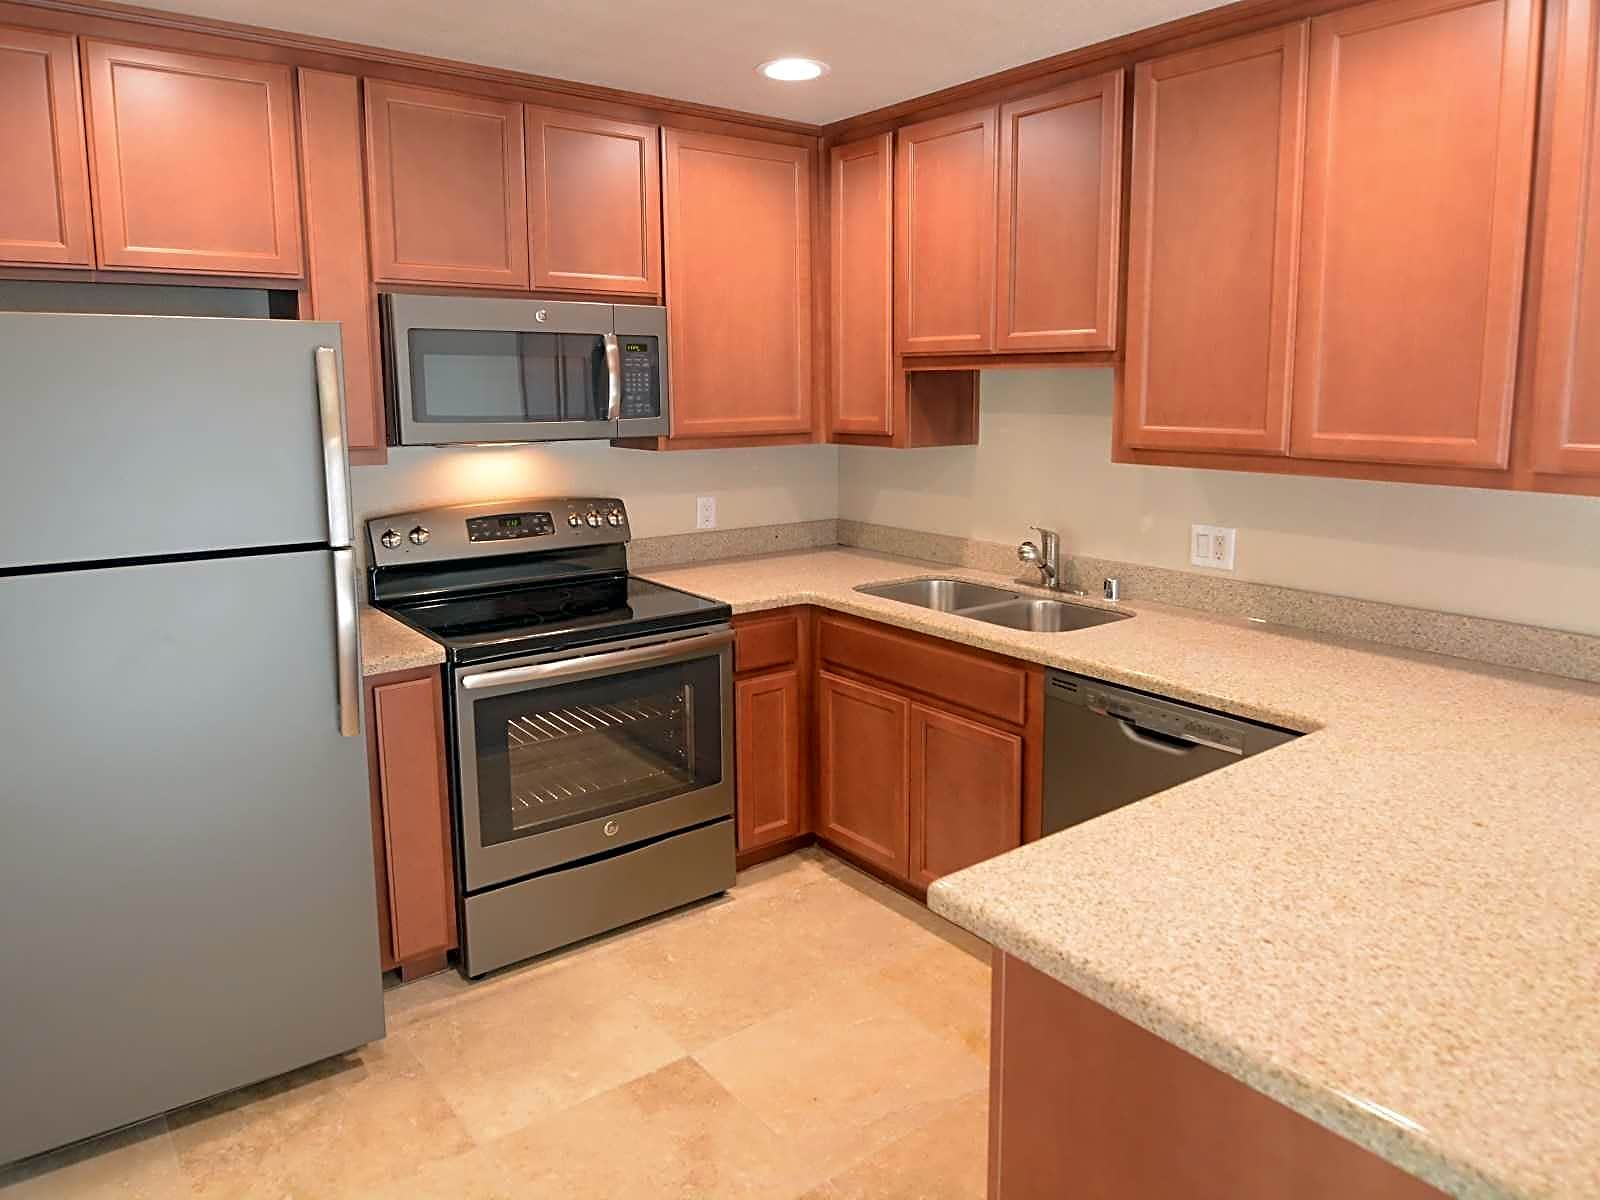 Apartments Near Sac State Selby Ranch for Sacramento State Students in Sacramento, CA